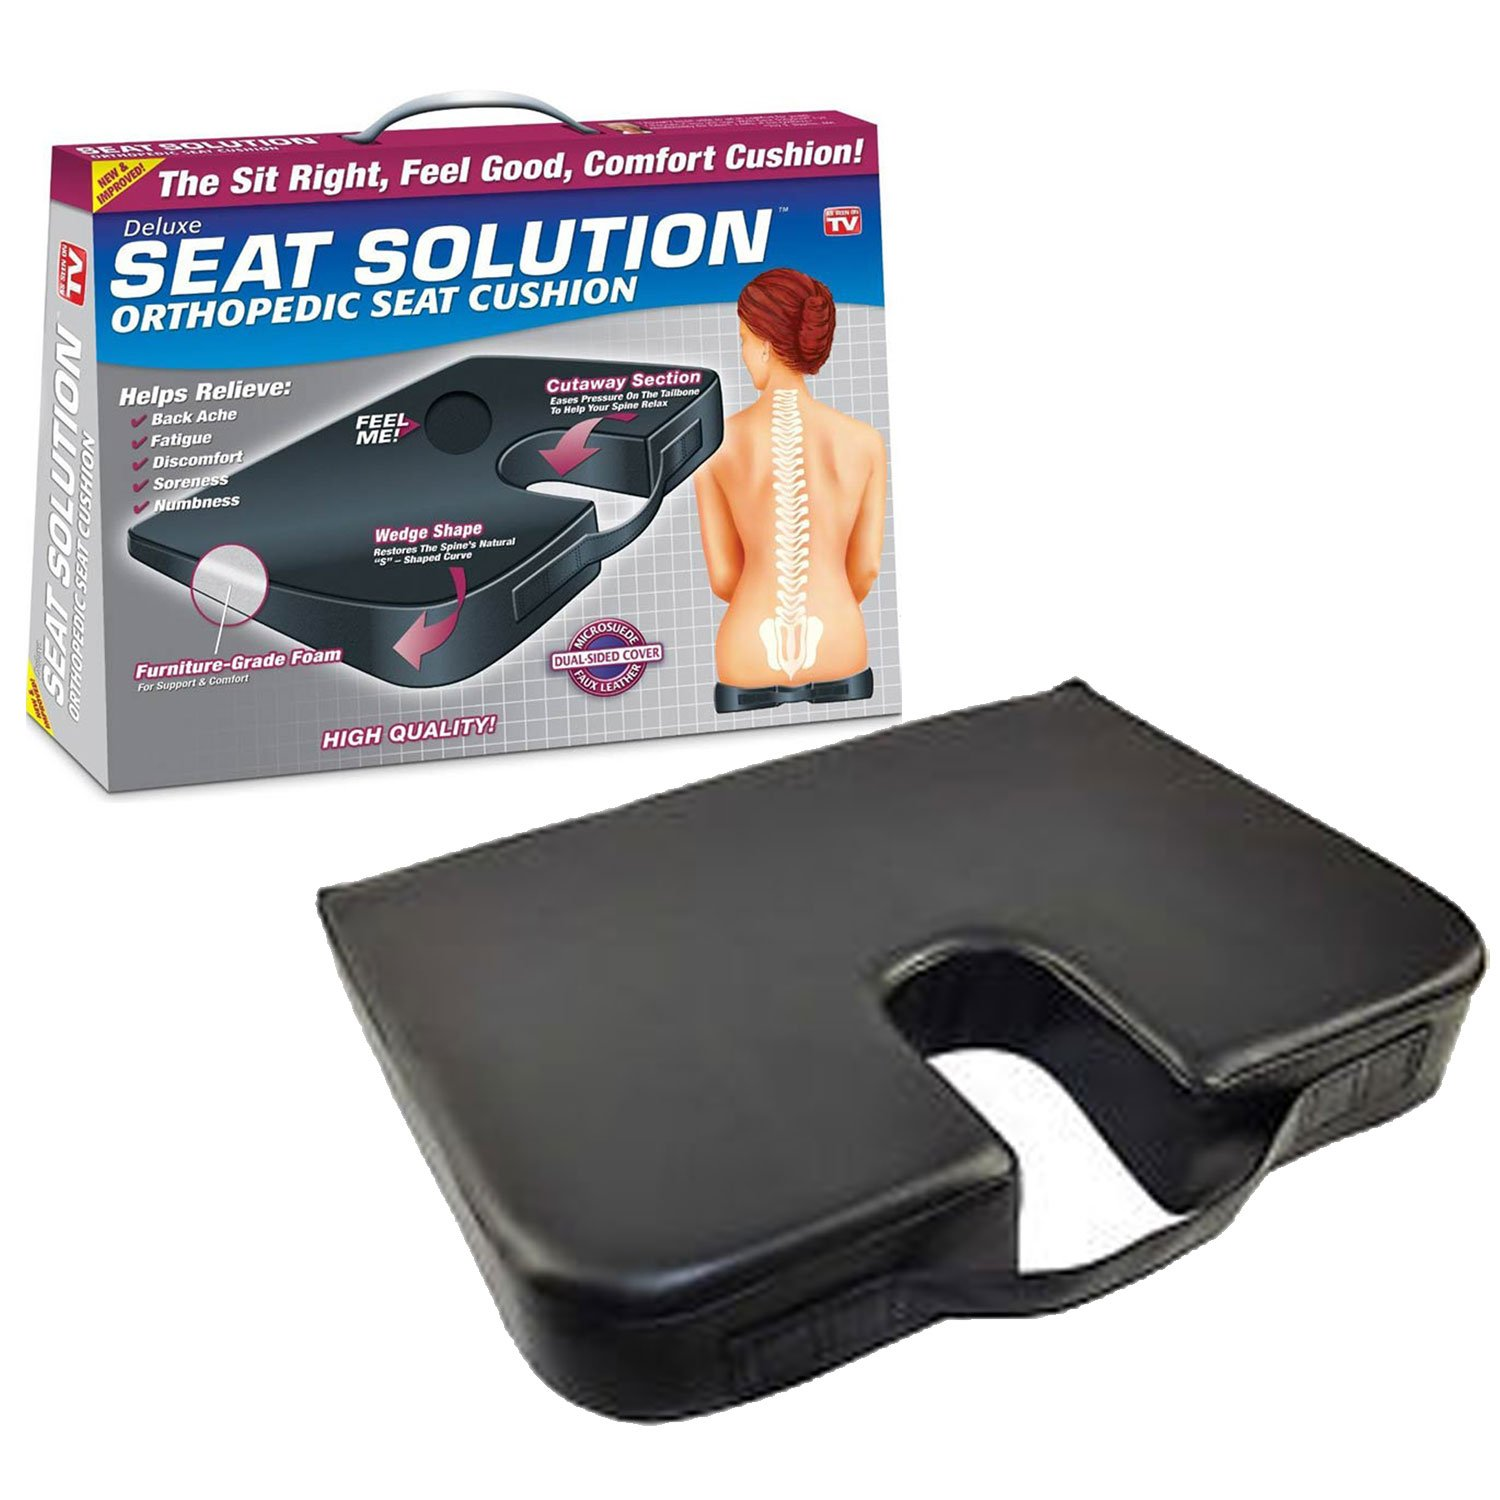 Deluxe Seat Solution™ Orthopedic Seat Cushion by As Seen On TV